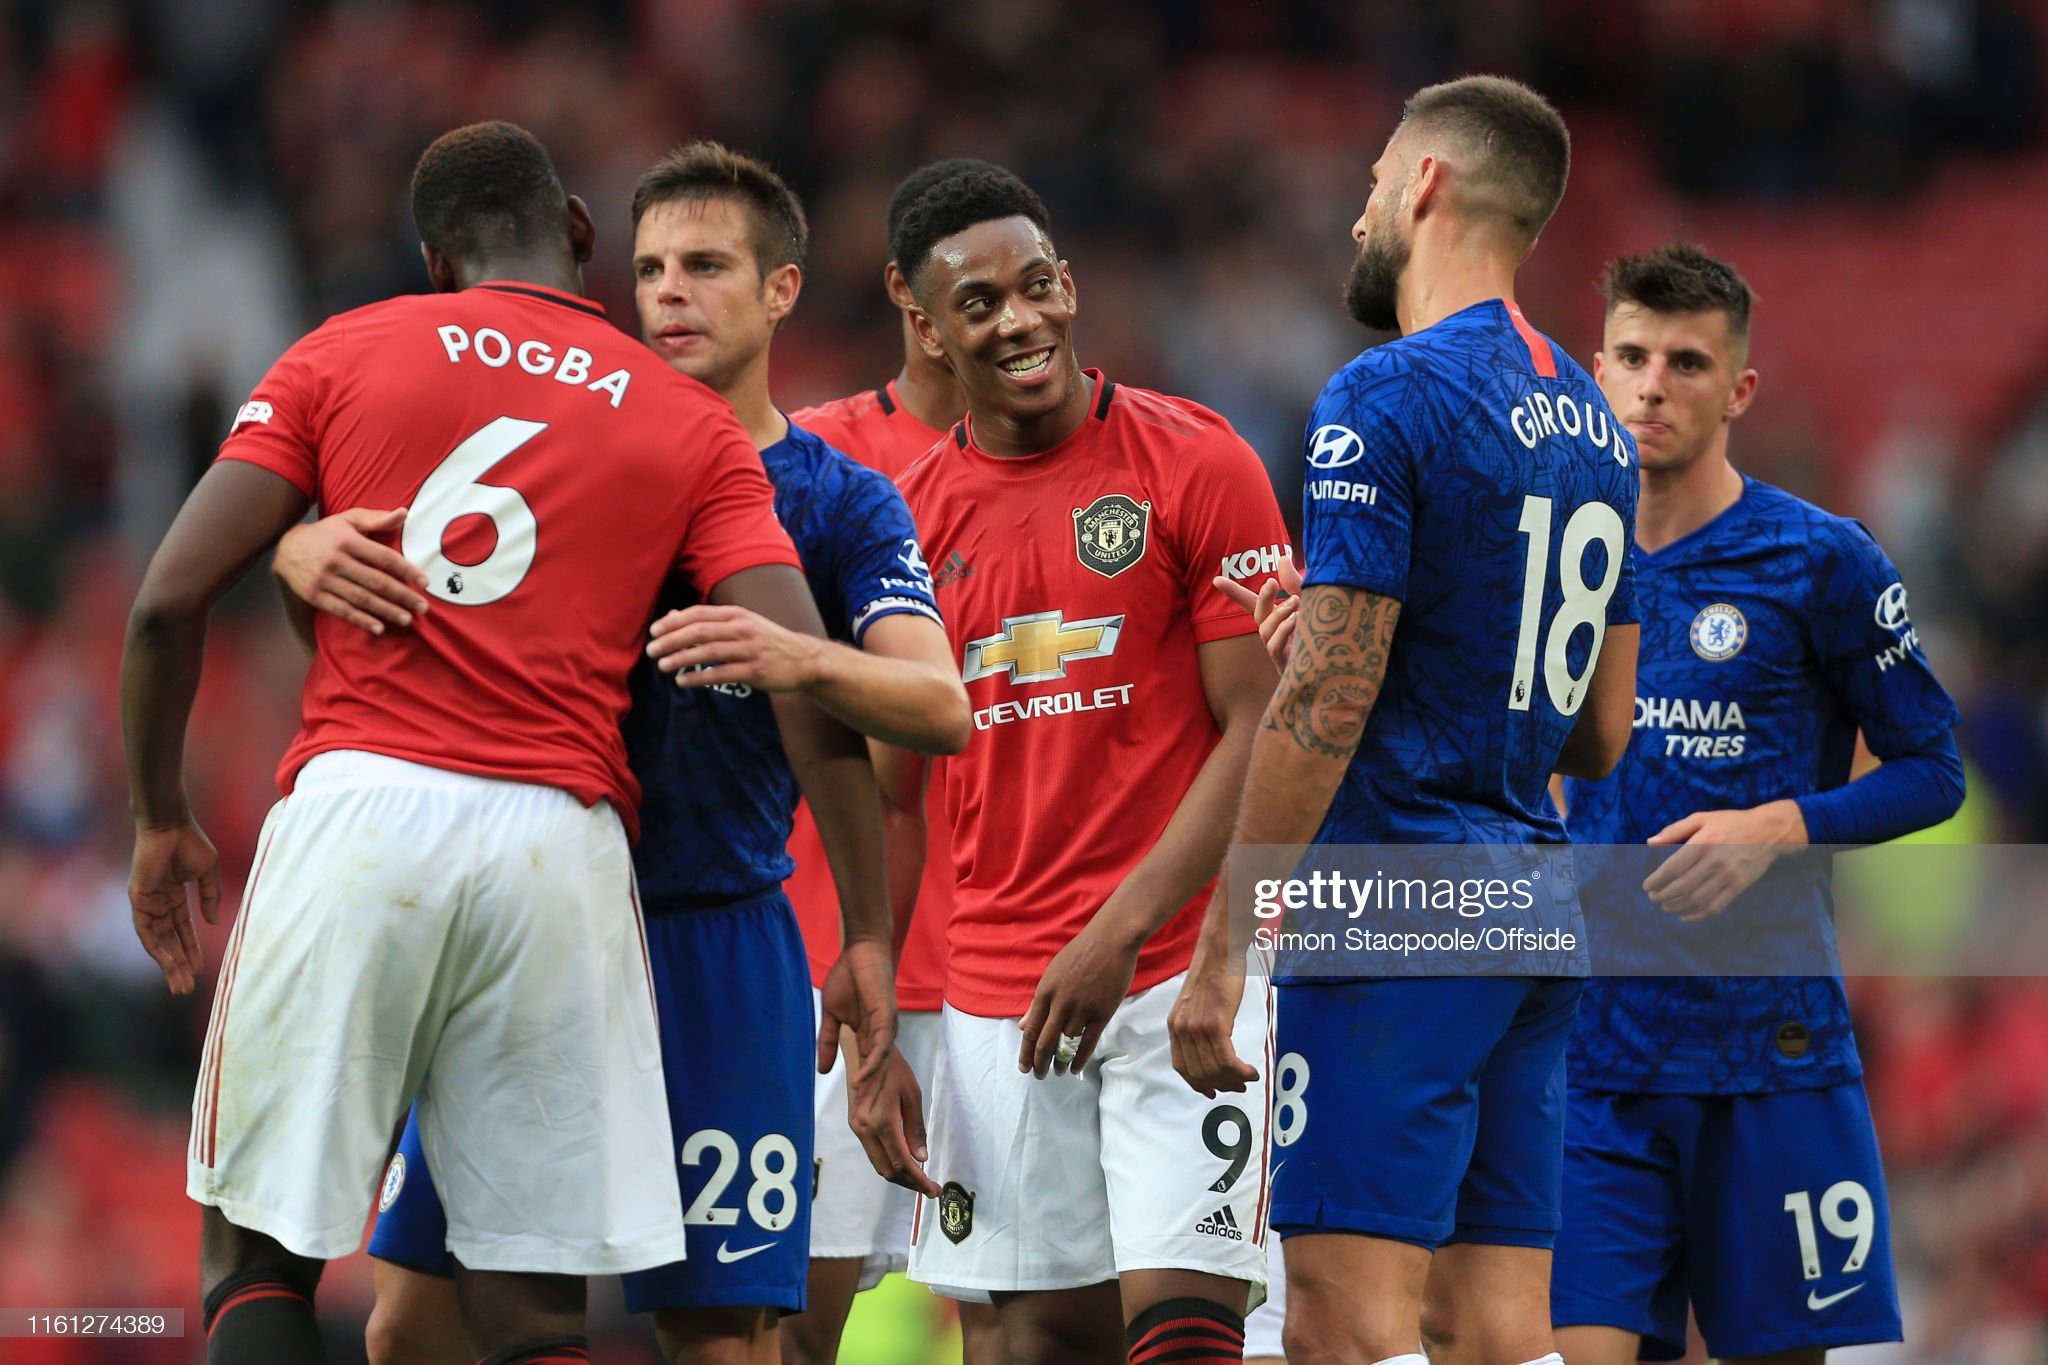 Chelsea v Manchester United preview, prediction and odds